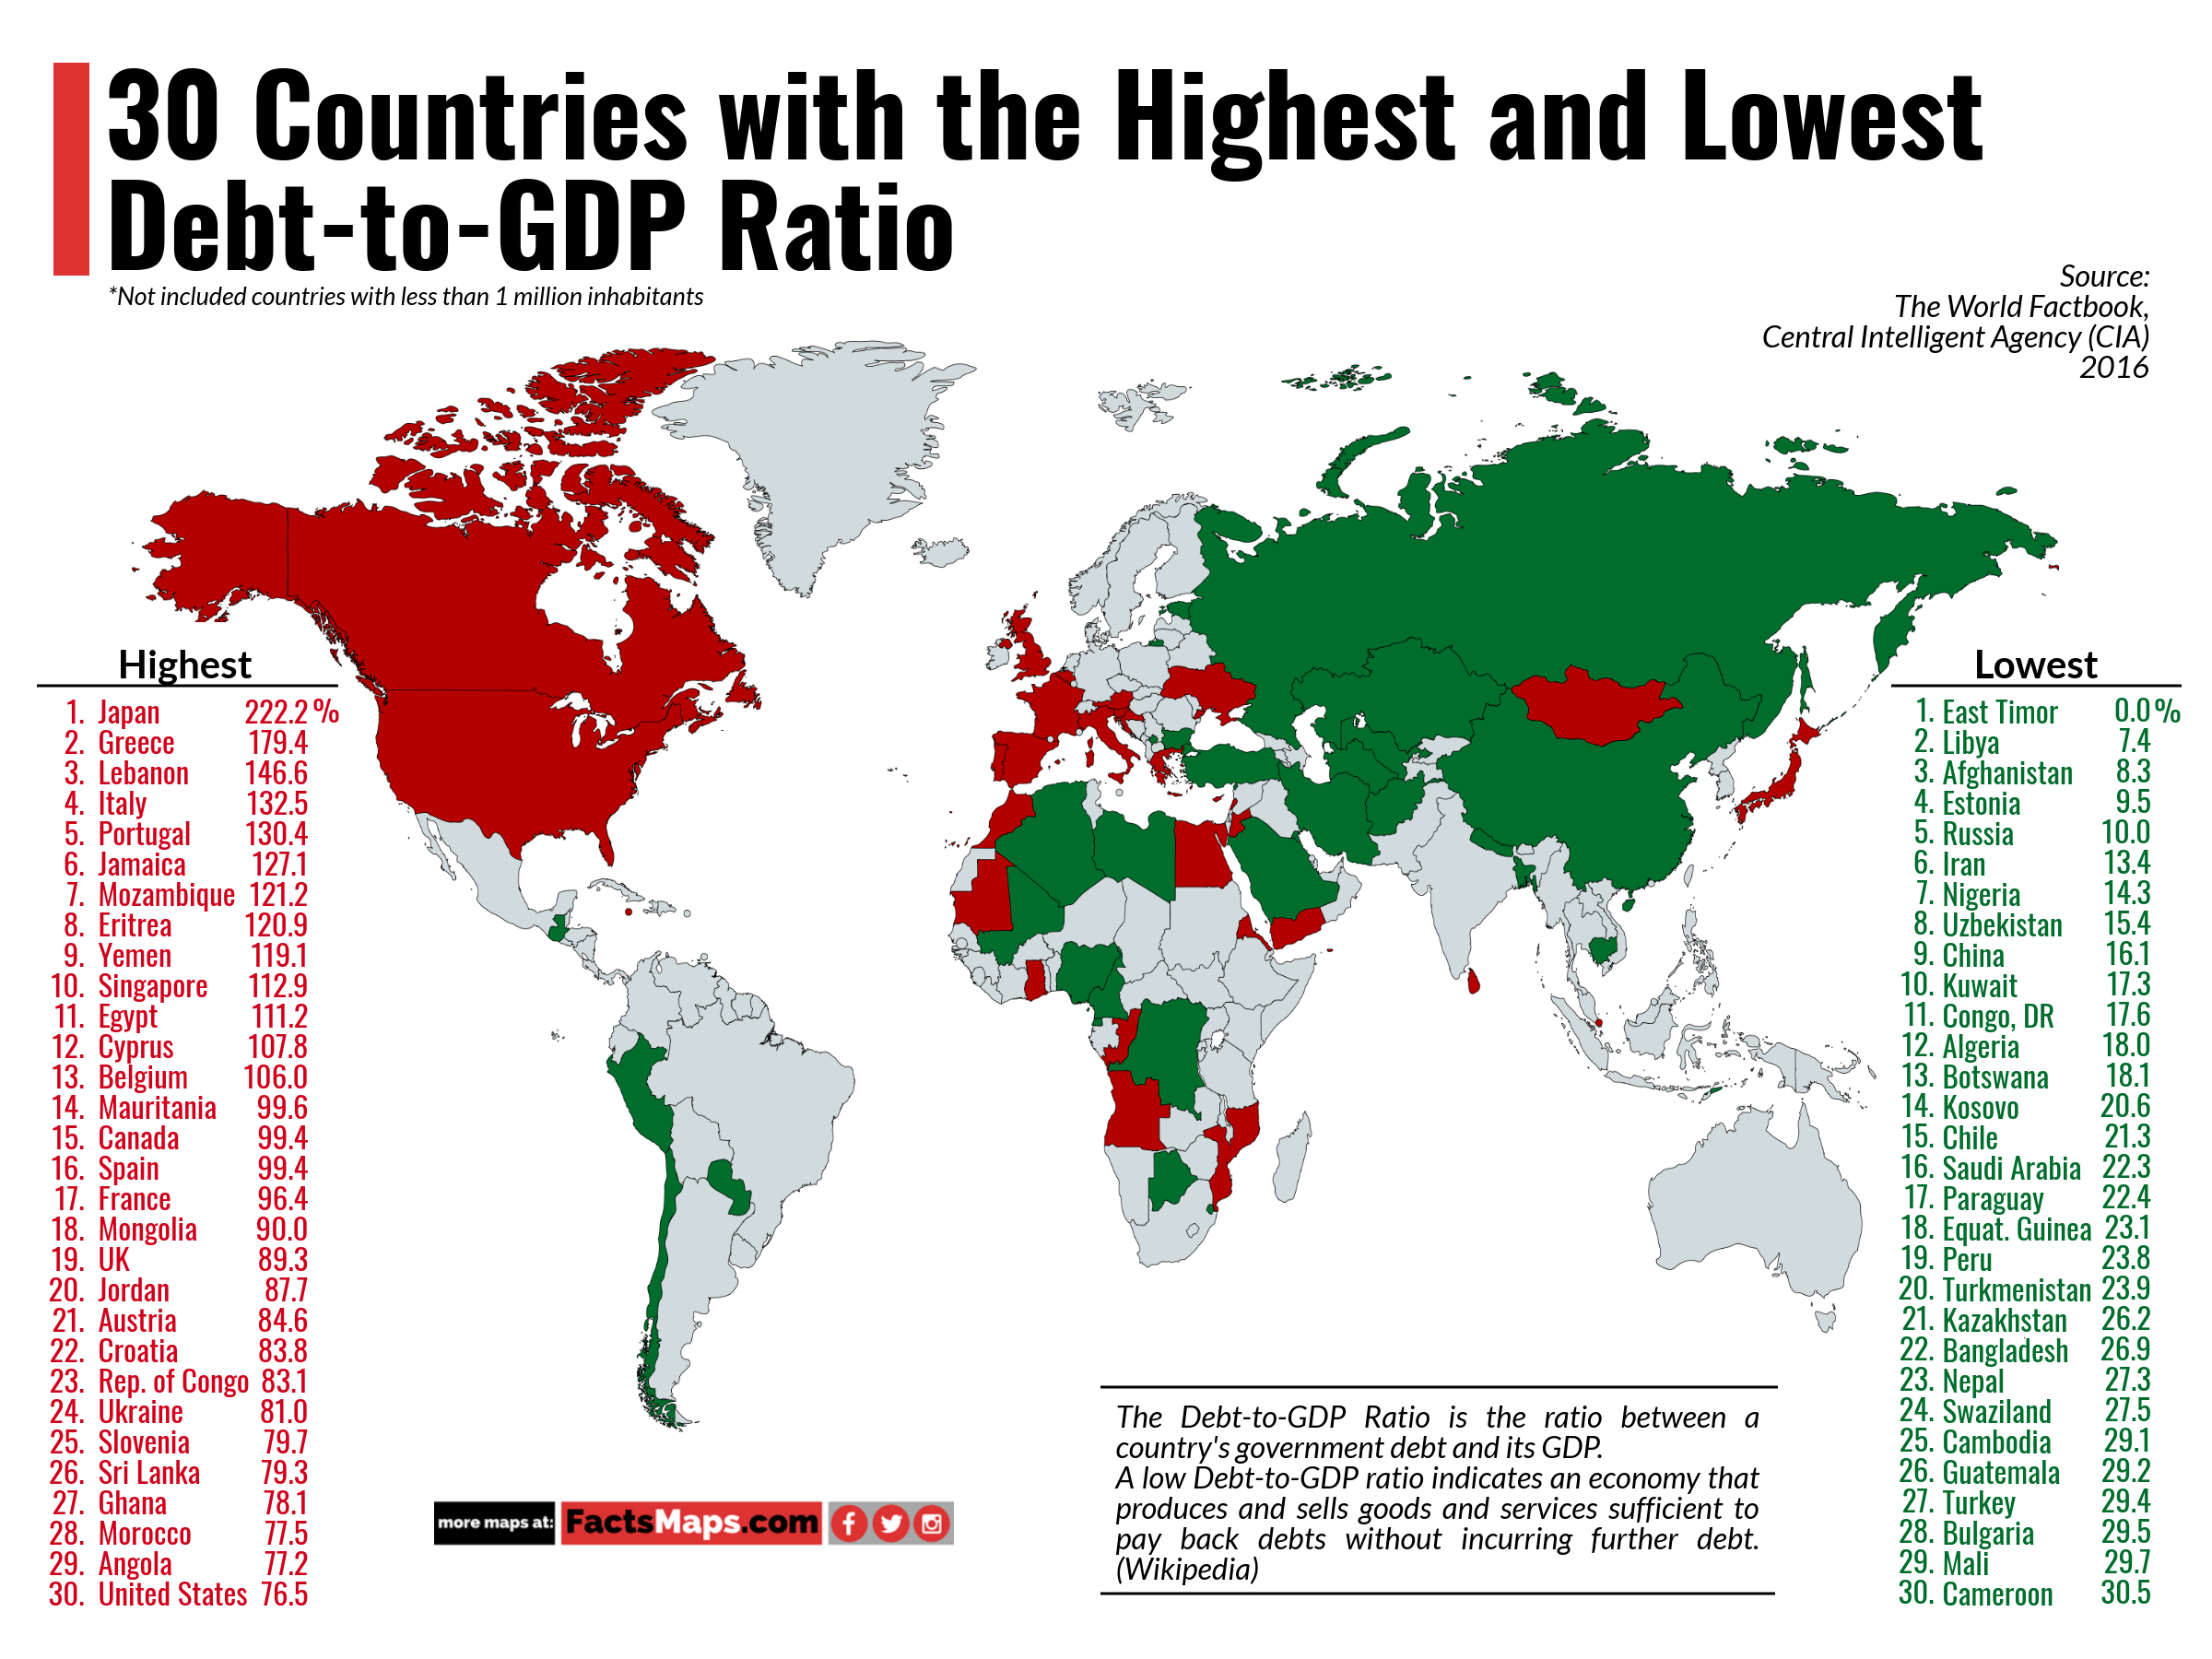 30 Countries with the Highest and Lowest Debt-to-GDP Ratio ... on international manufacturing map, international language map, international india map, international energy map, international risk map, international stock market map, international poverty map, international area map, international food map, international education map, international water map, international trade map, international business map,